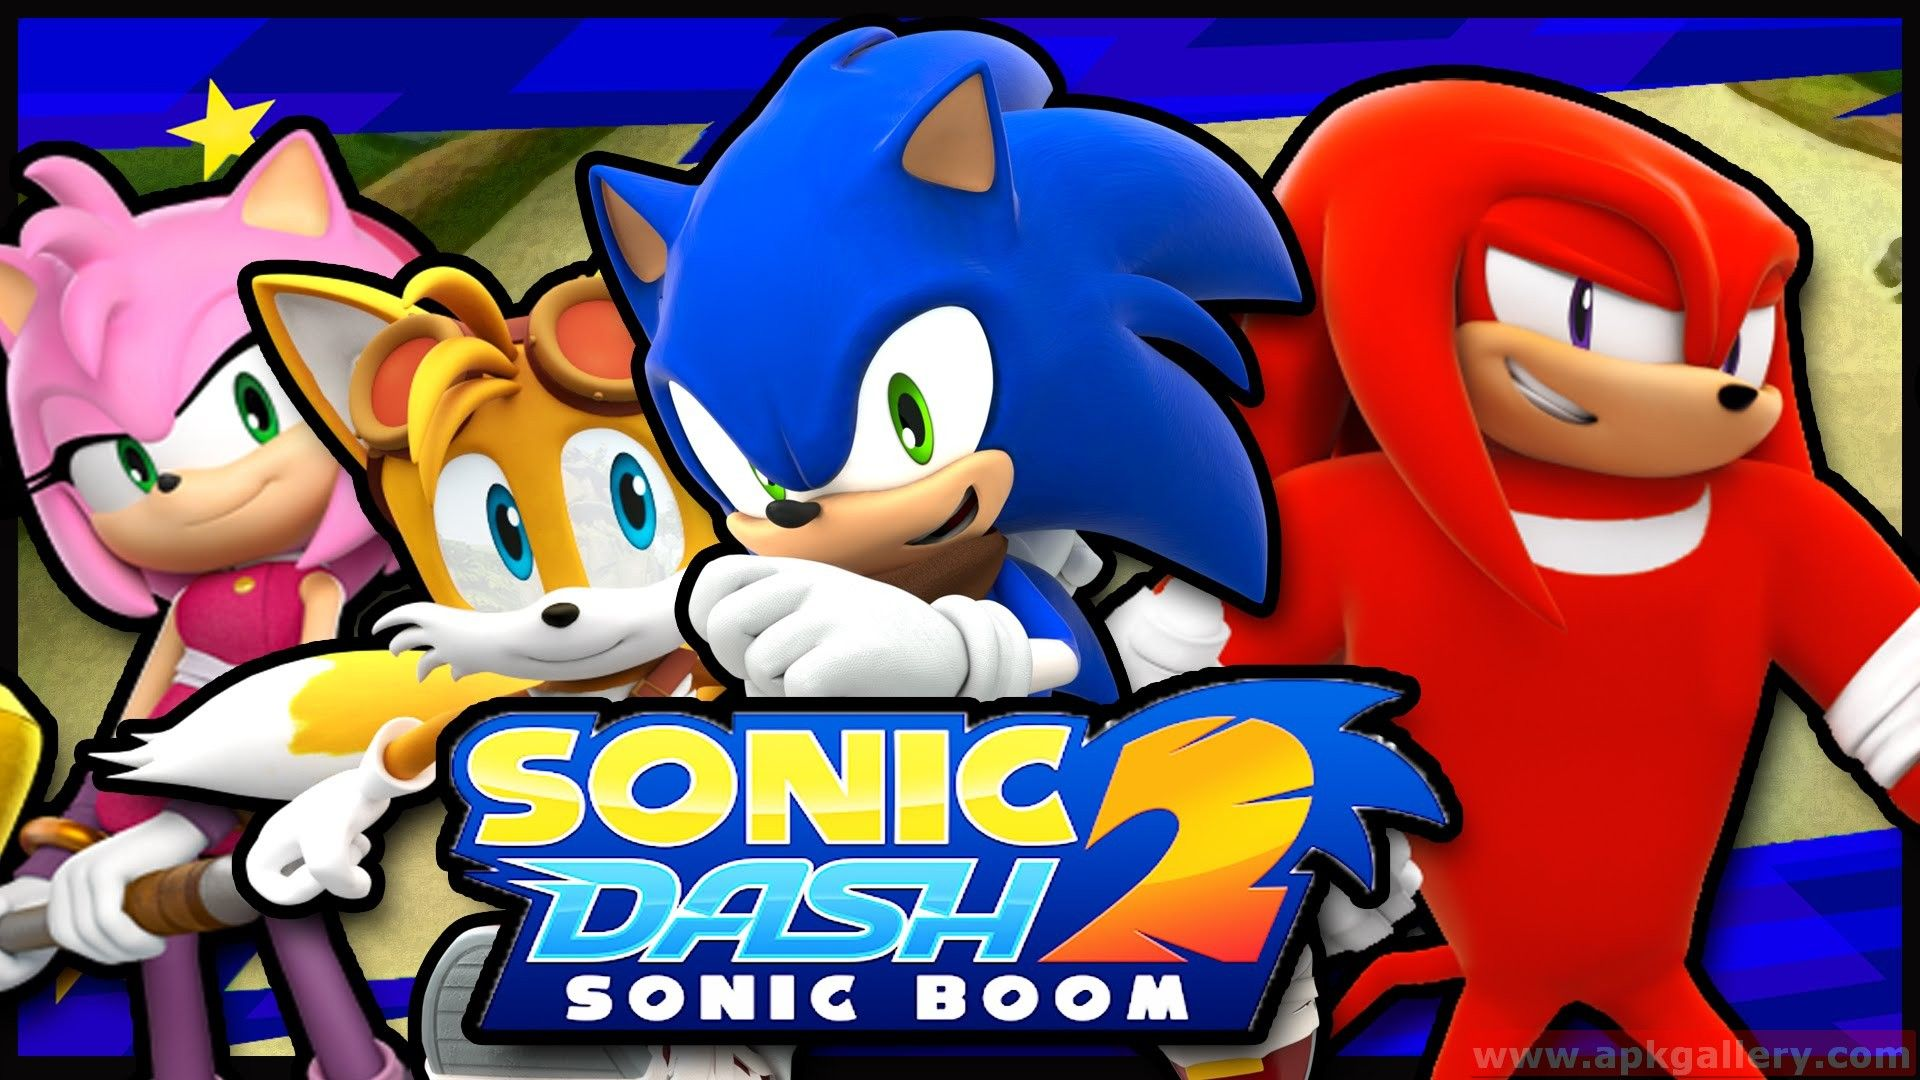 Sonic Dash 2 Sonic Boom 0.1.0 APK for Android Device